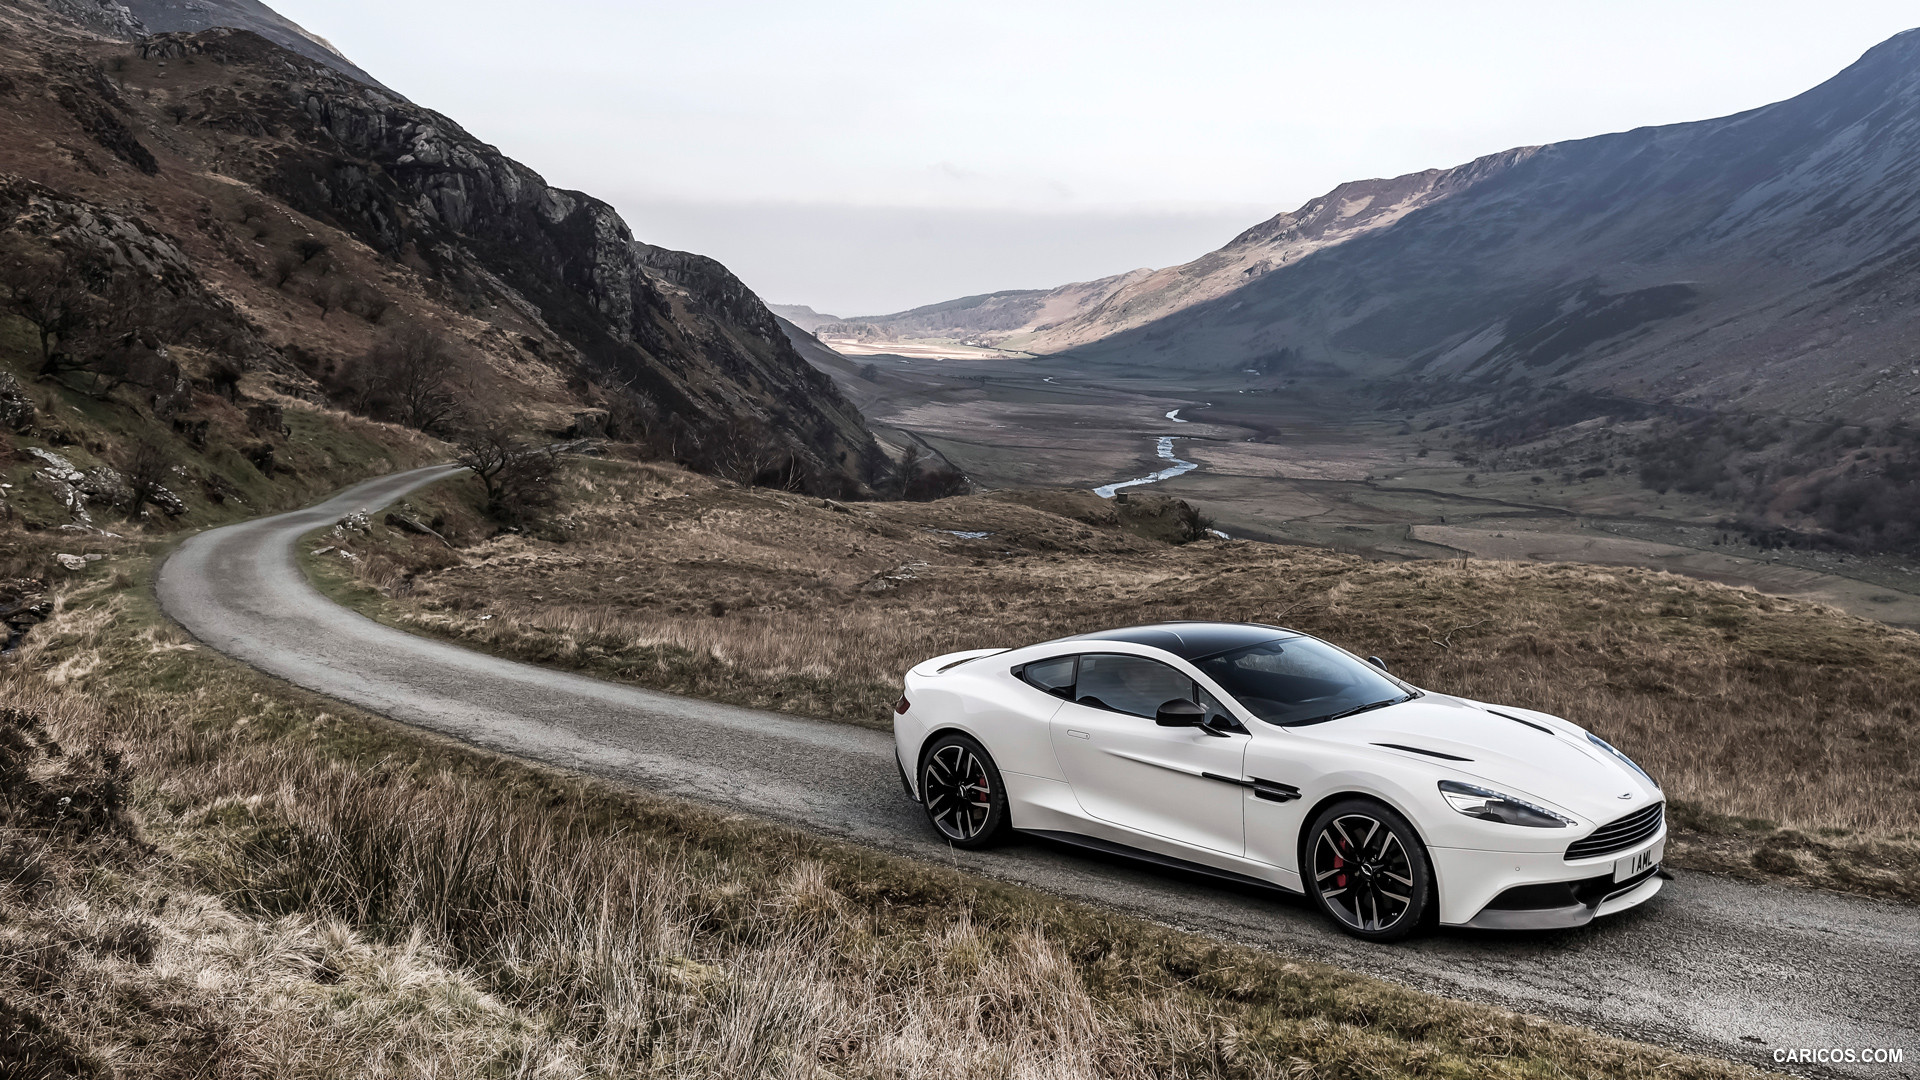 2015 Aston Martin Vanquish Carbon White Edition   Side HD 1920x1080